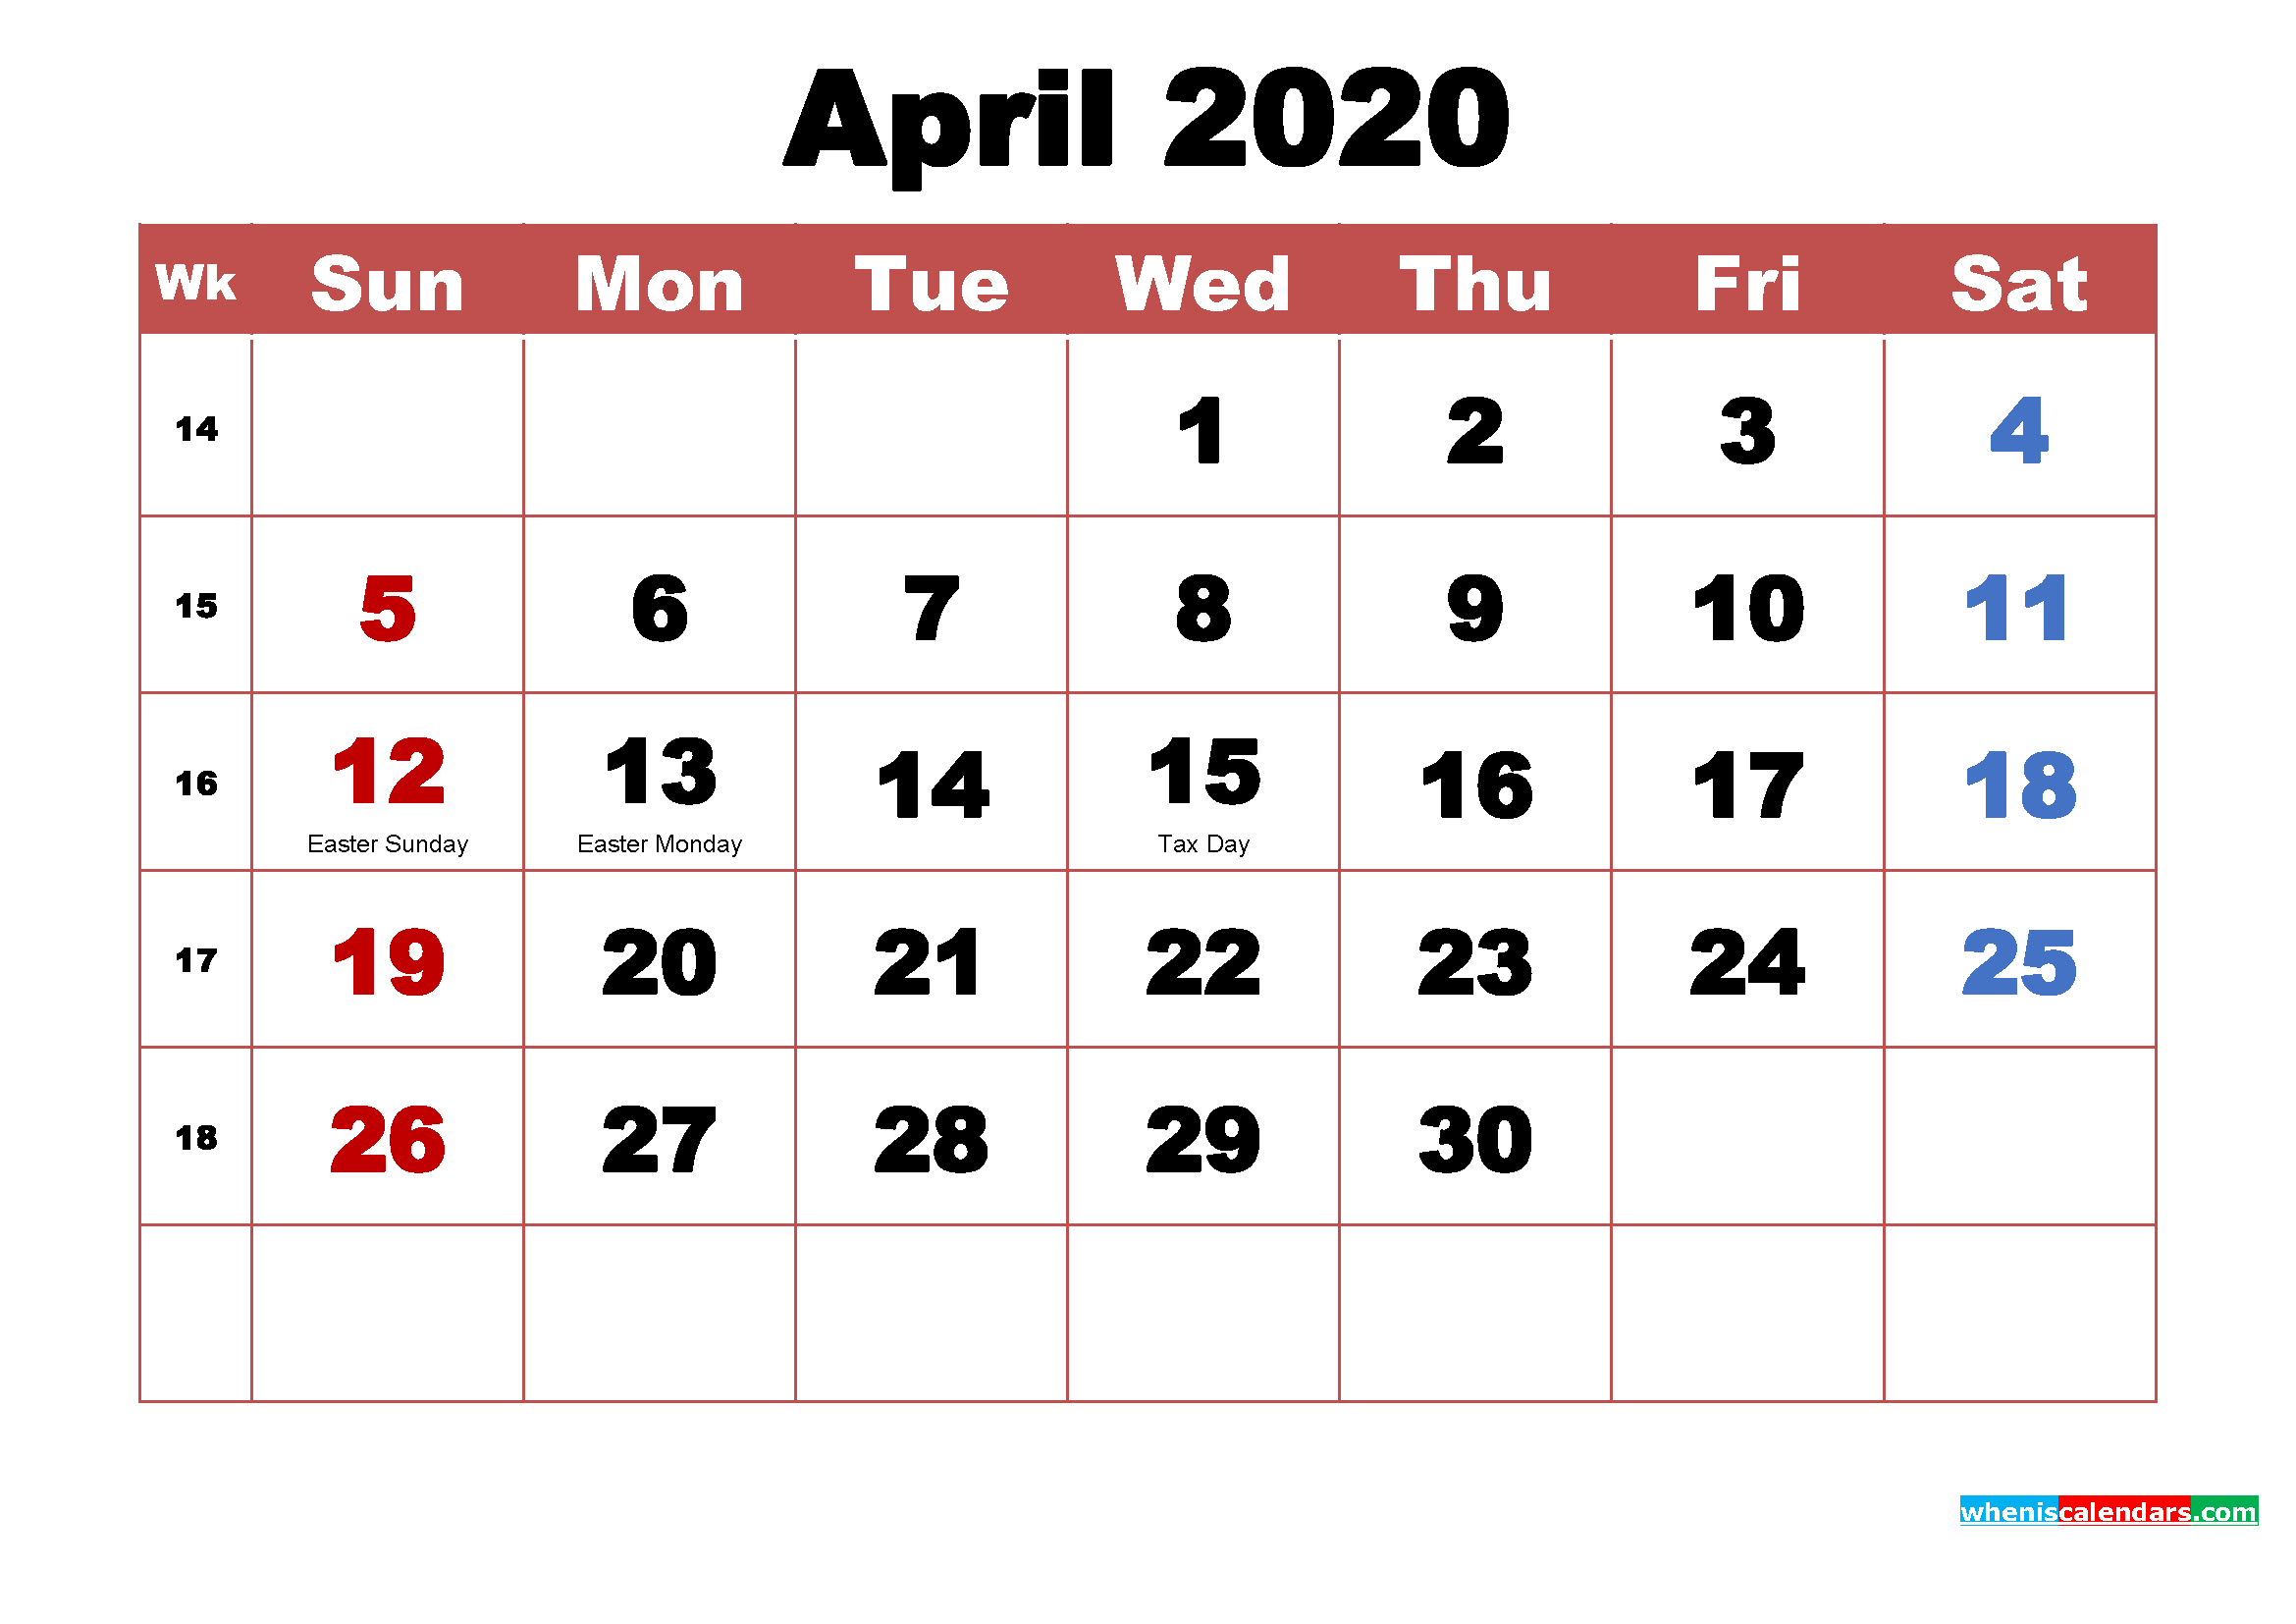 April 2020 Calendar Wallpaper High Resolution